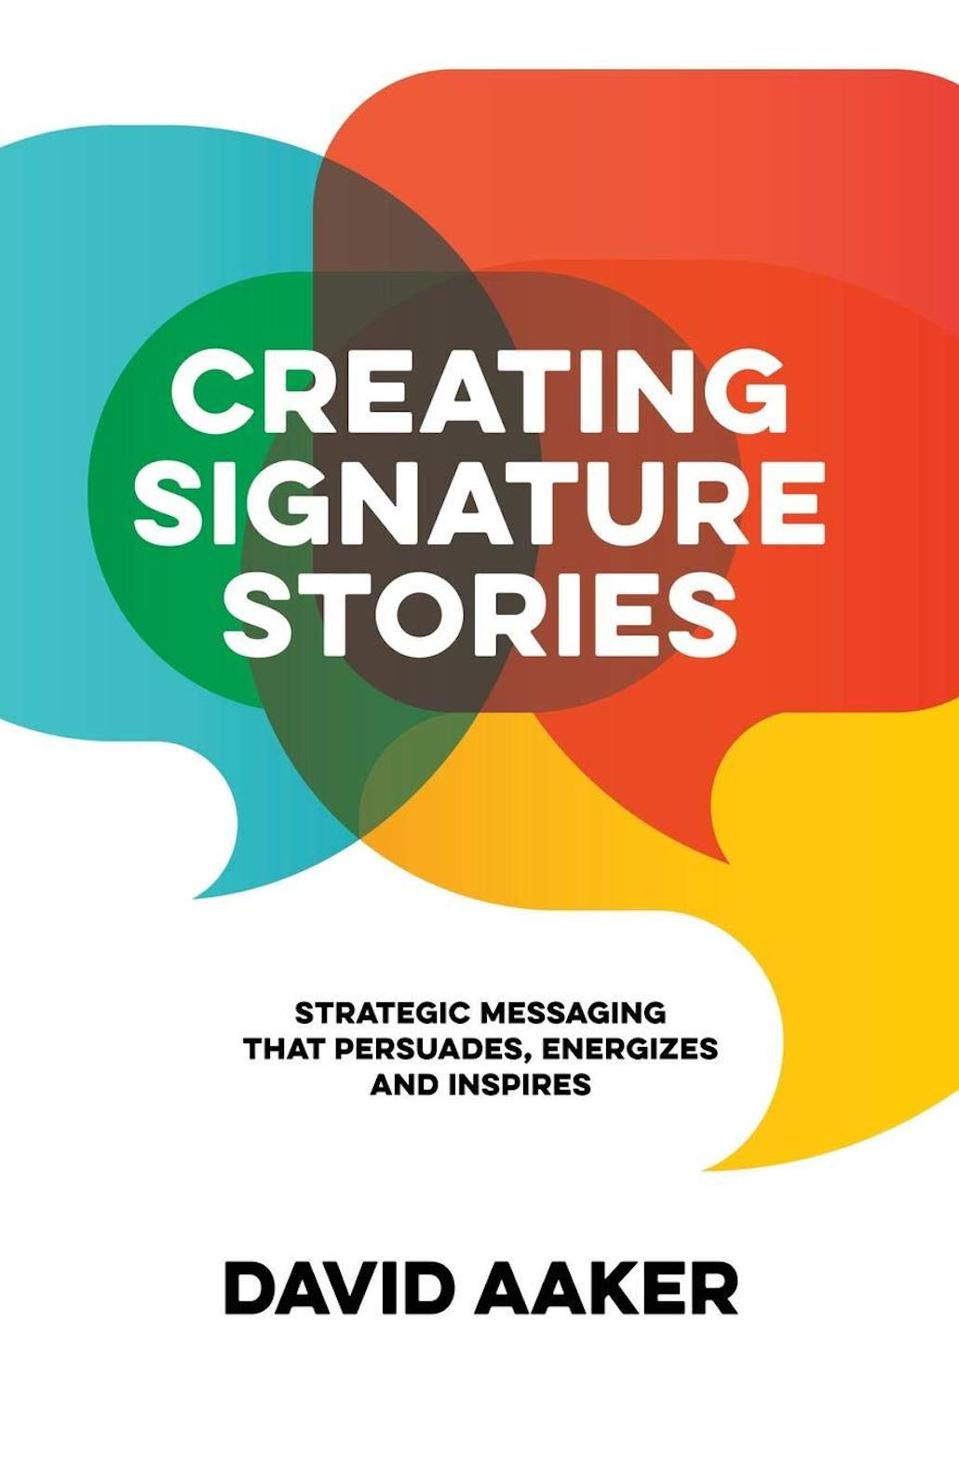 Creating Signature Stories: Strategic Messaging that Energizes, Persuades and Inspires by David Aaker